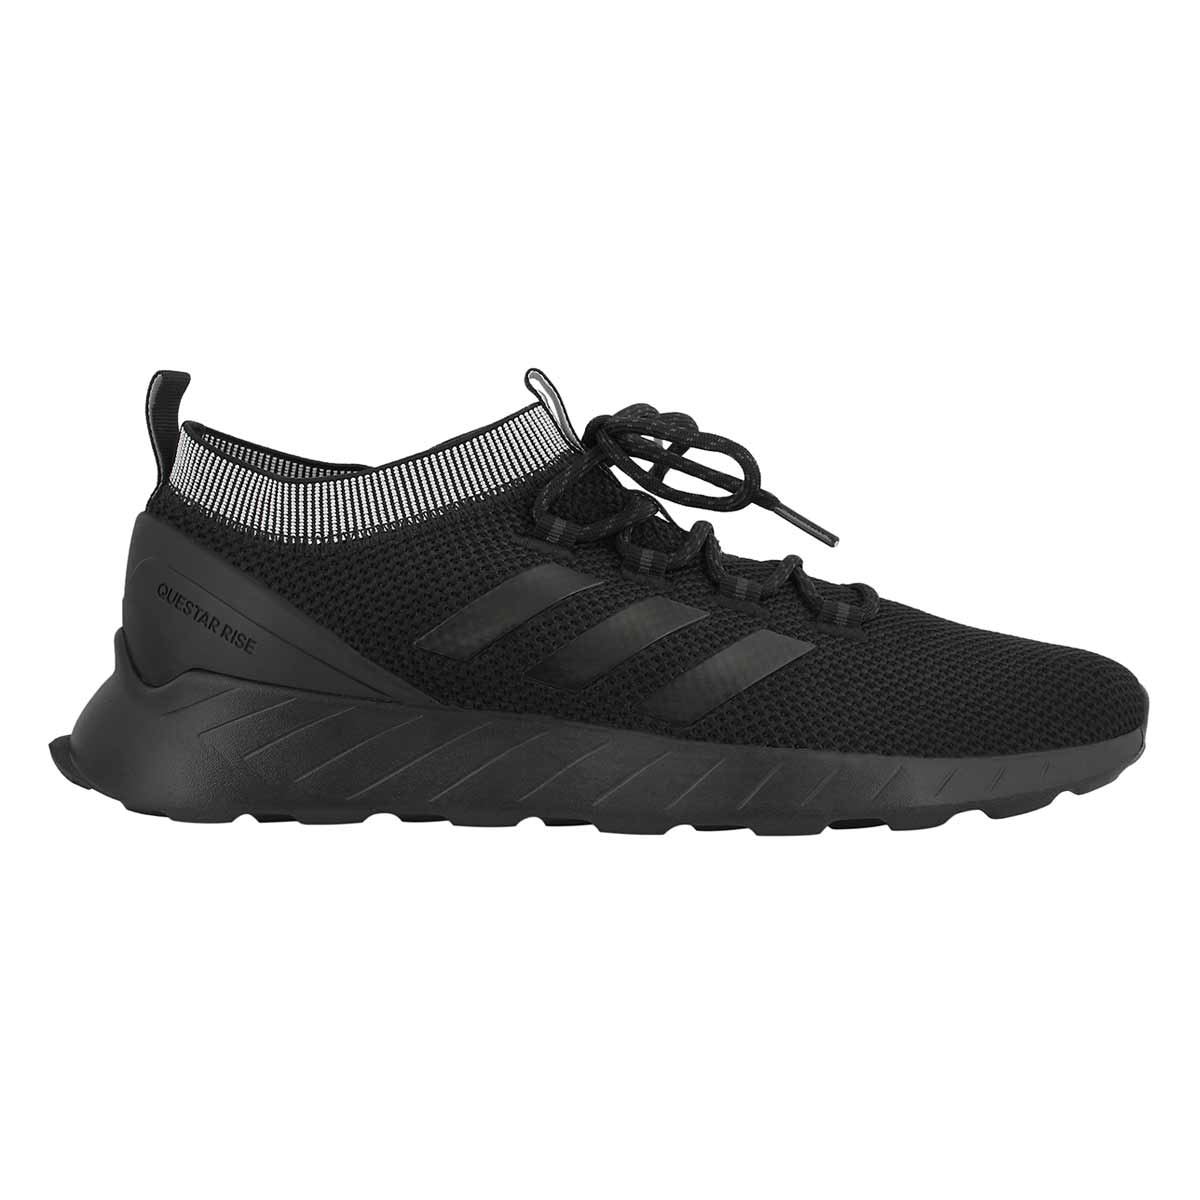 Mns Questar Rise black running shoe